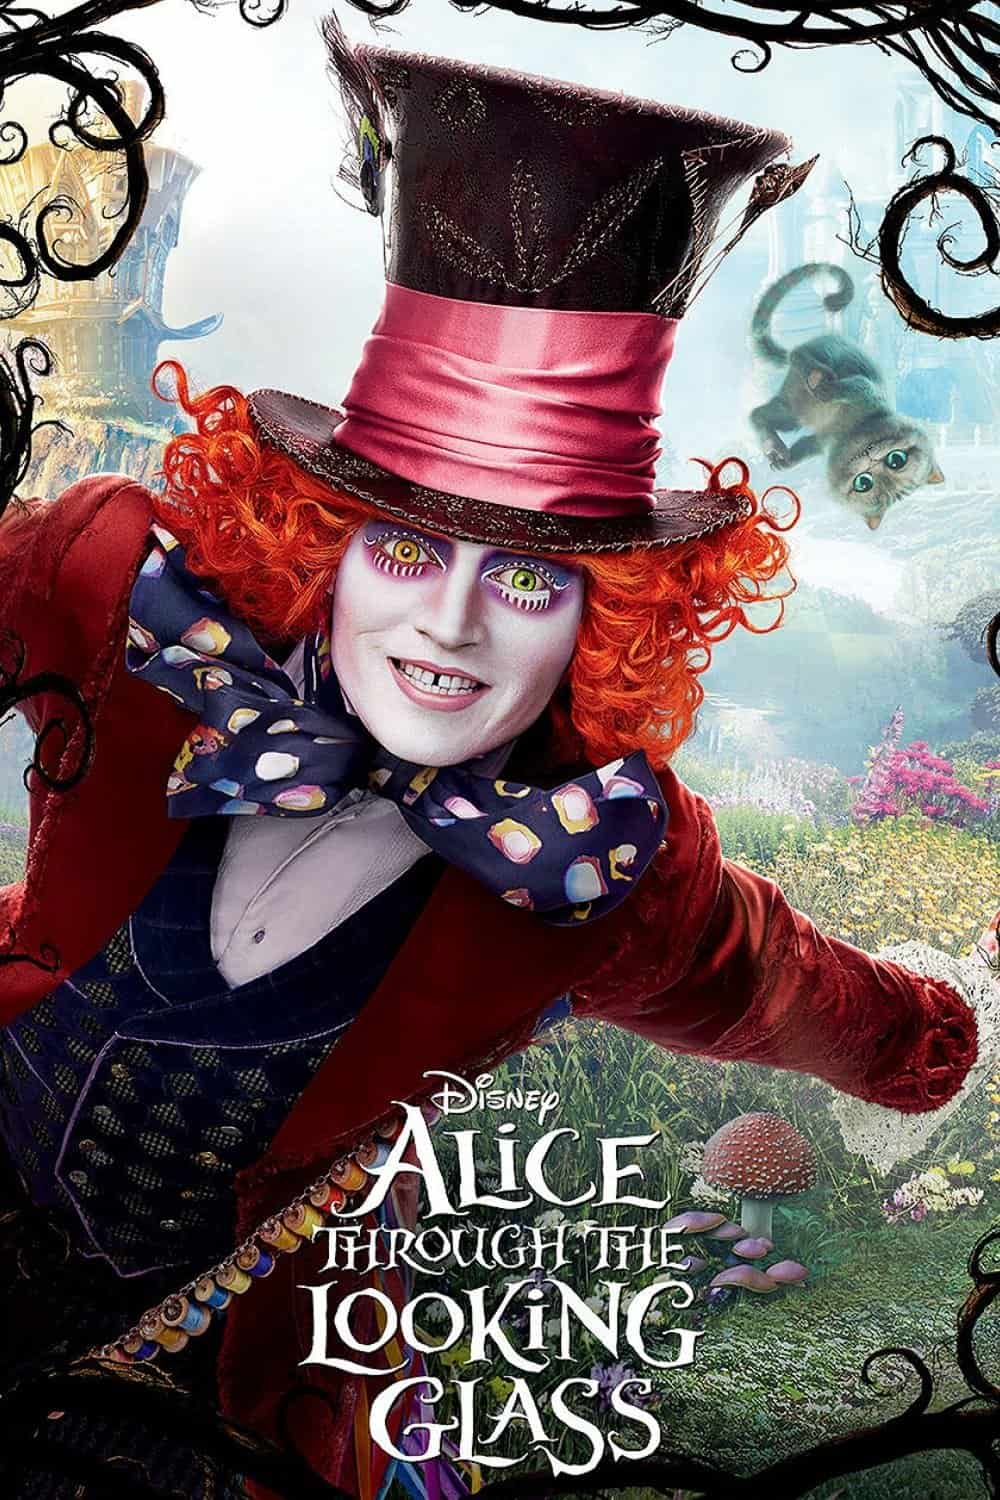 Alice Through the Looking Glass, 2016